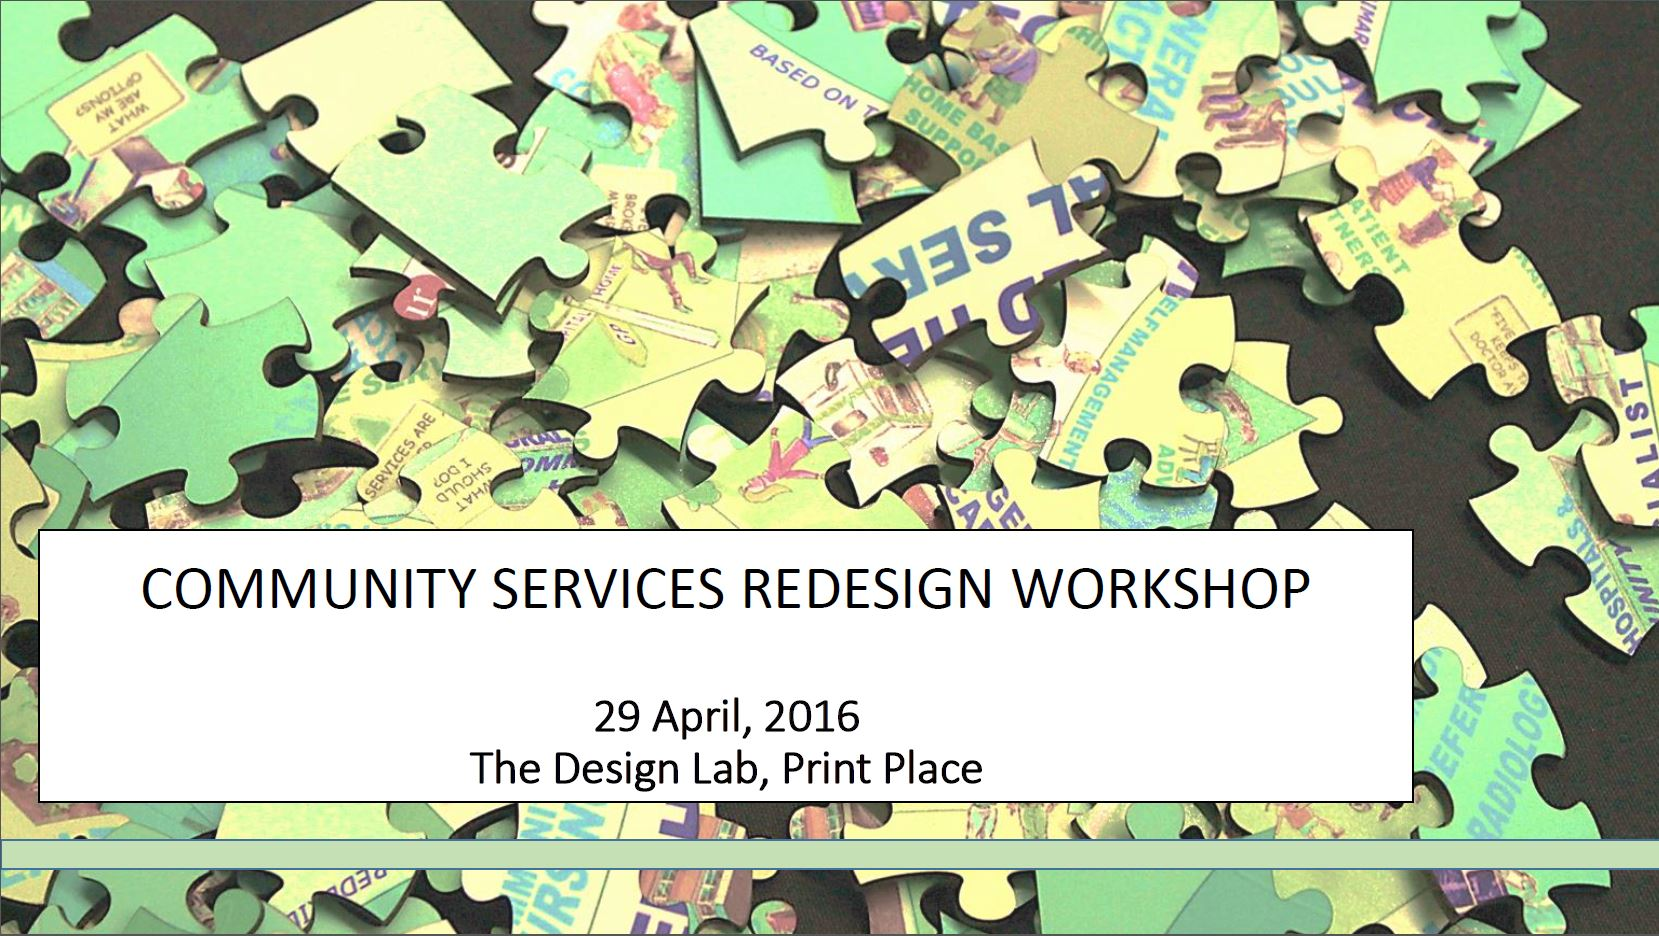 Community Services Redesign Workshop